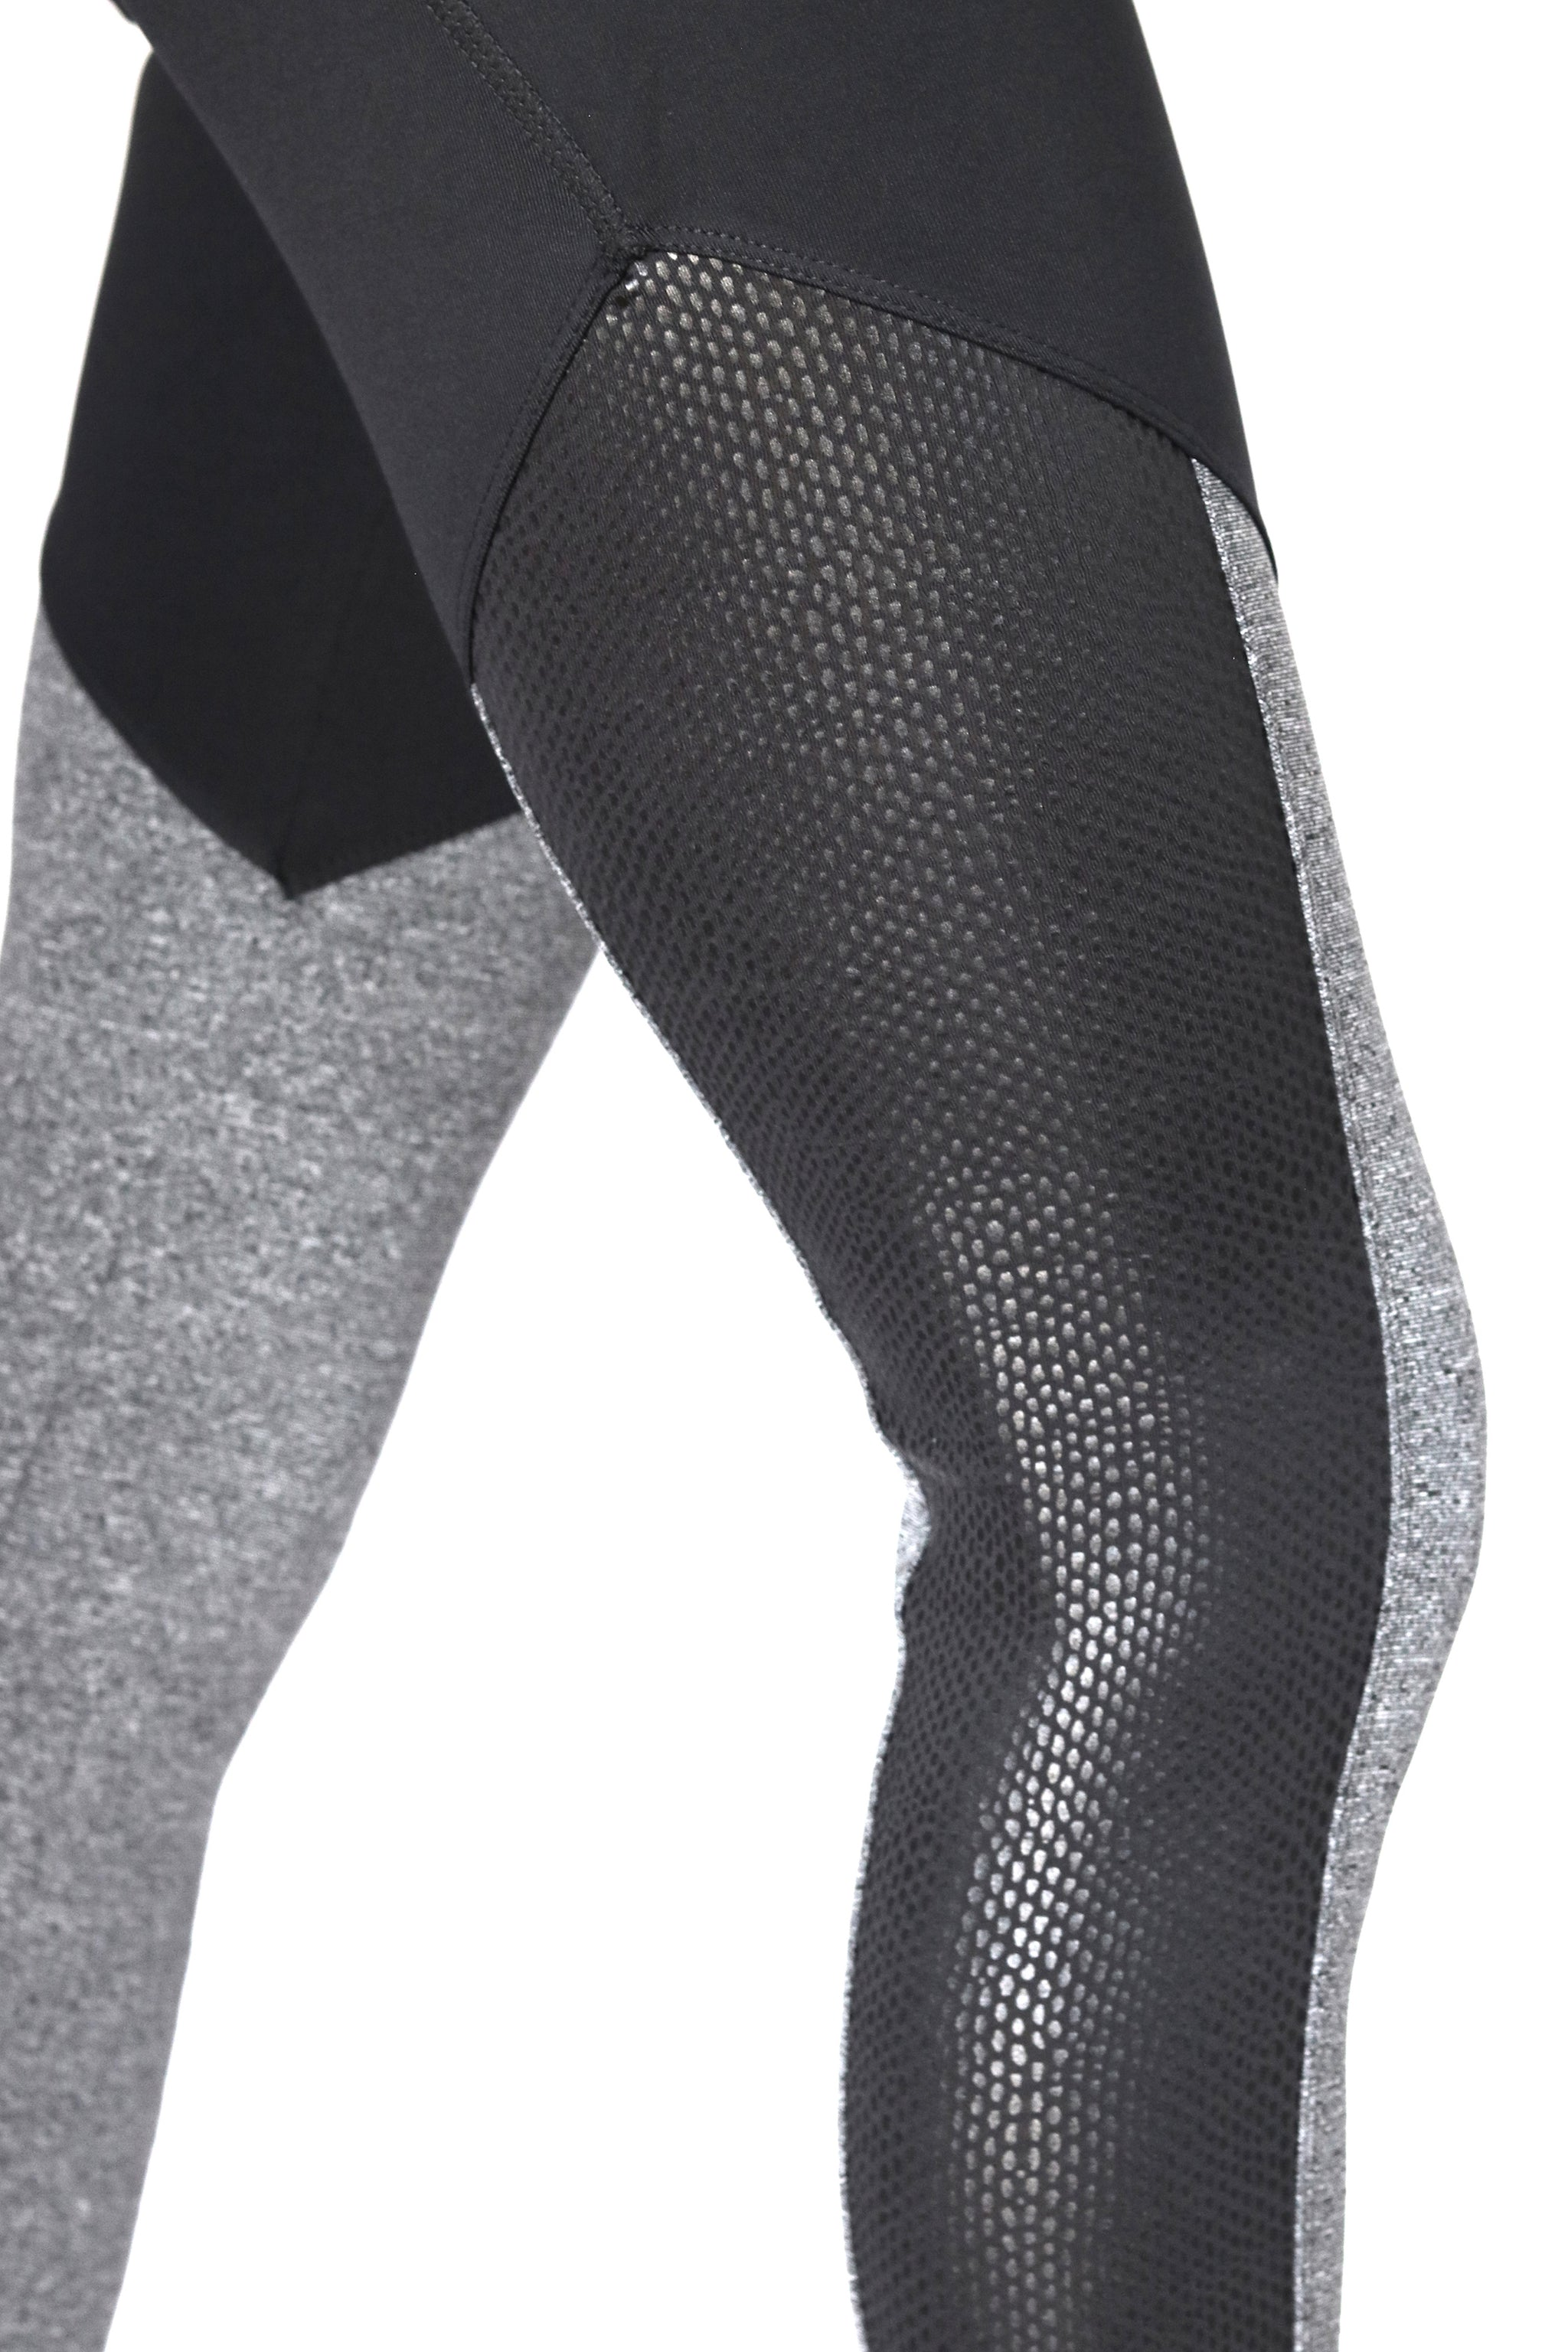 The Bleecker Yoga Pants